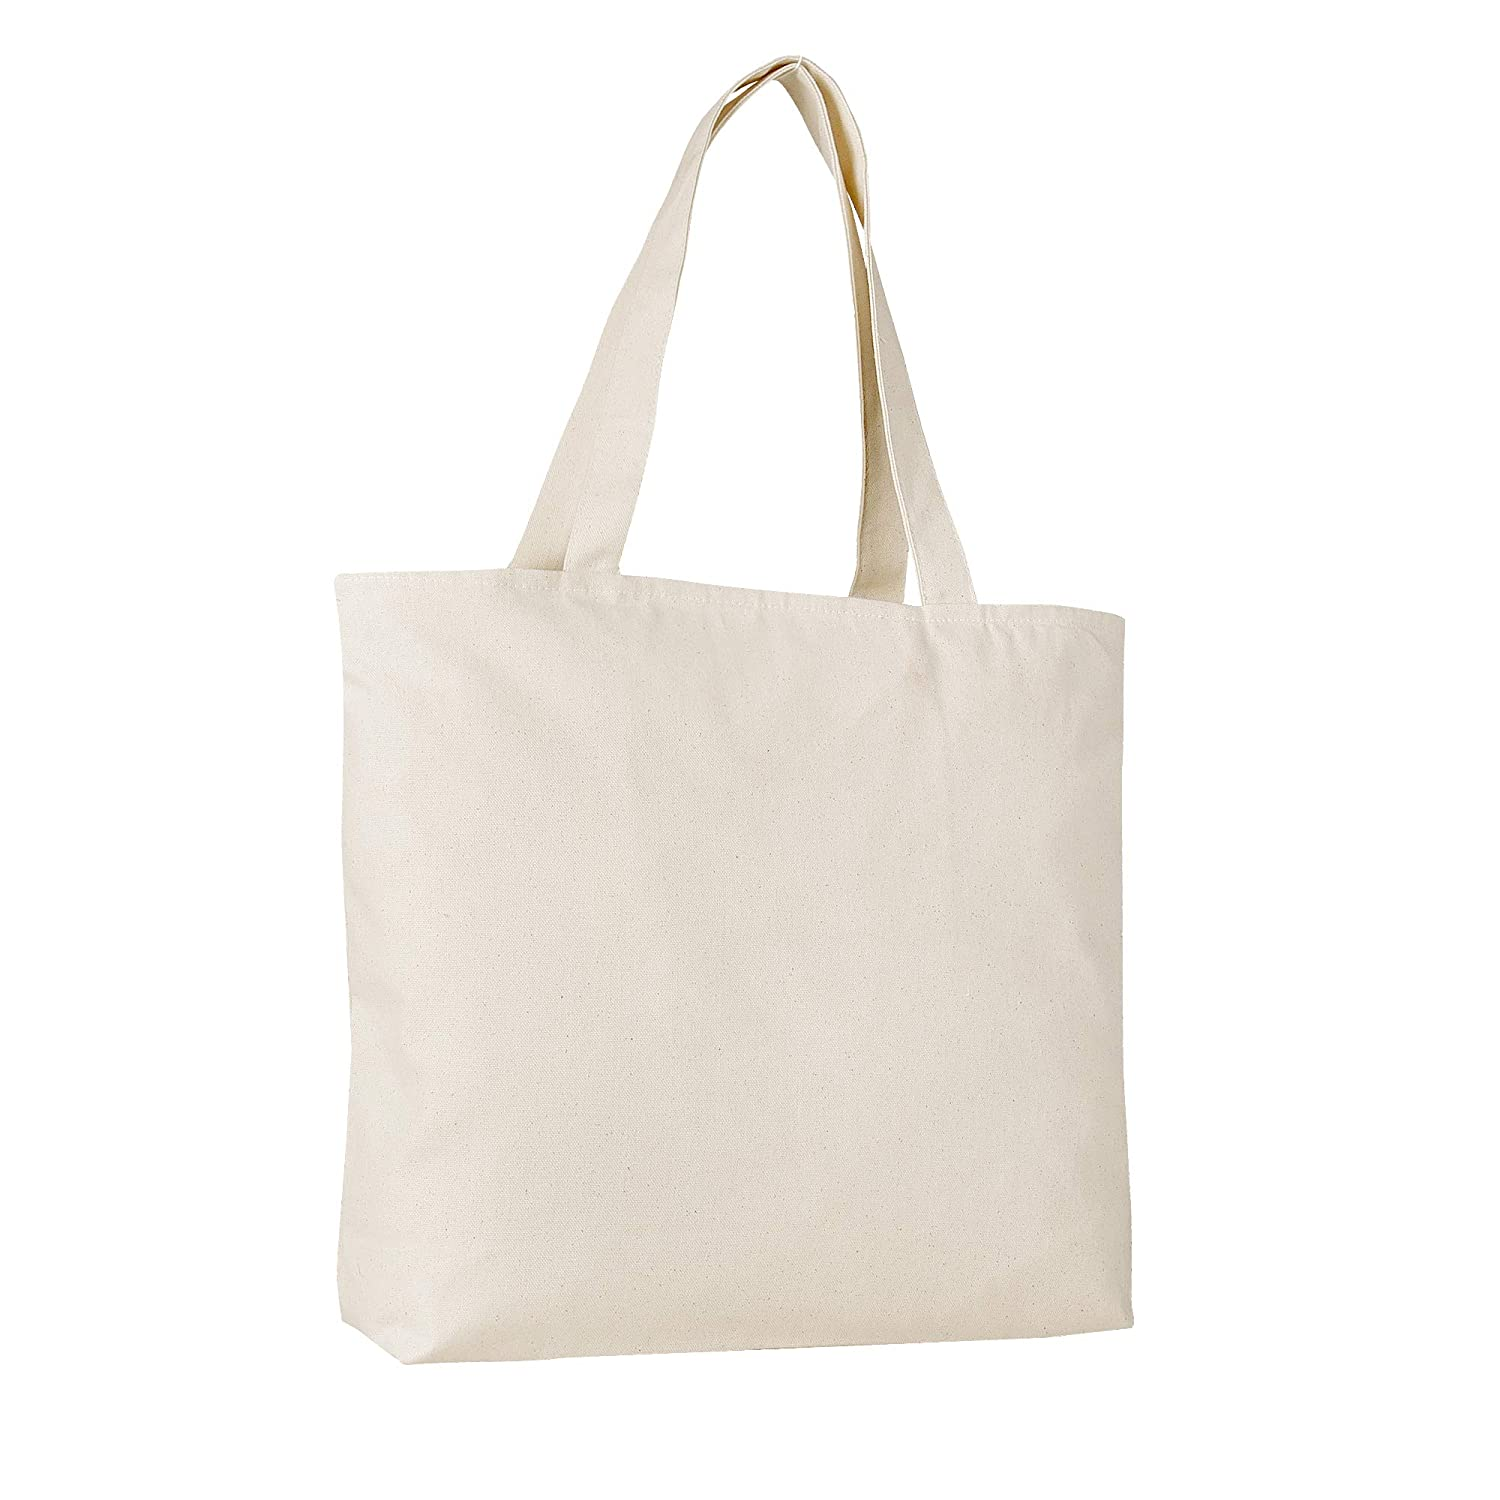 Large Durable Canvas Blank Tote Bags Bulk - Grocery Canvas Bags with Zipper  top Zipper Inside Pocket and Long Handles -TG261 (1 c4e1703e06eb